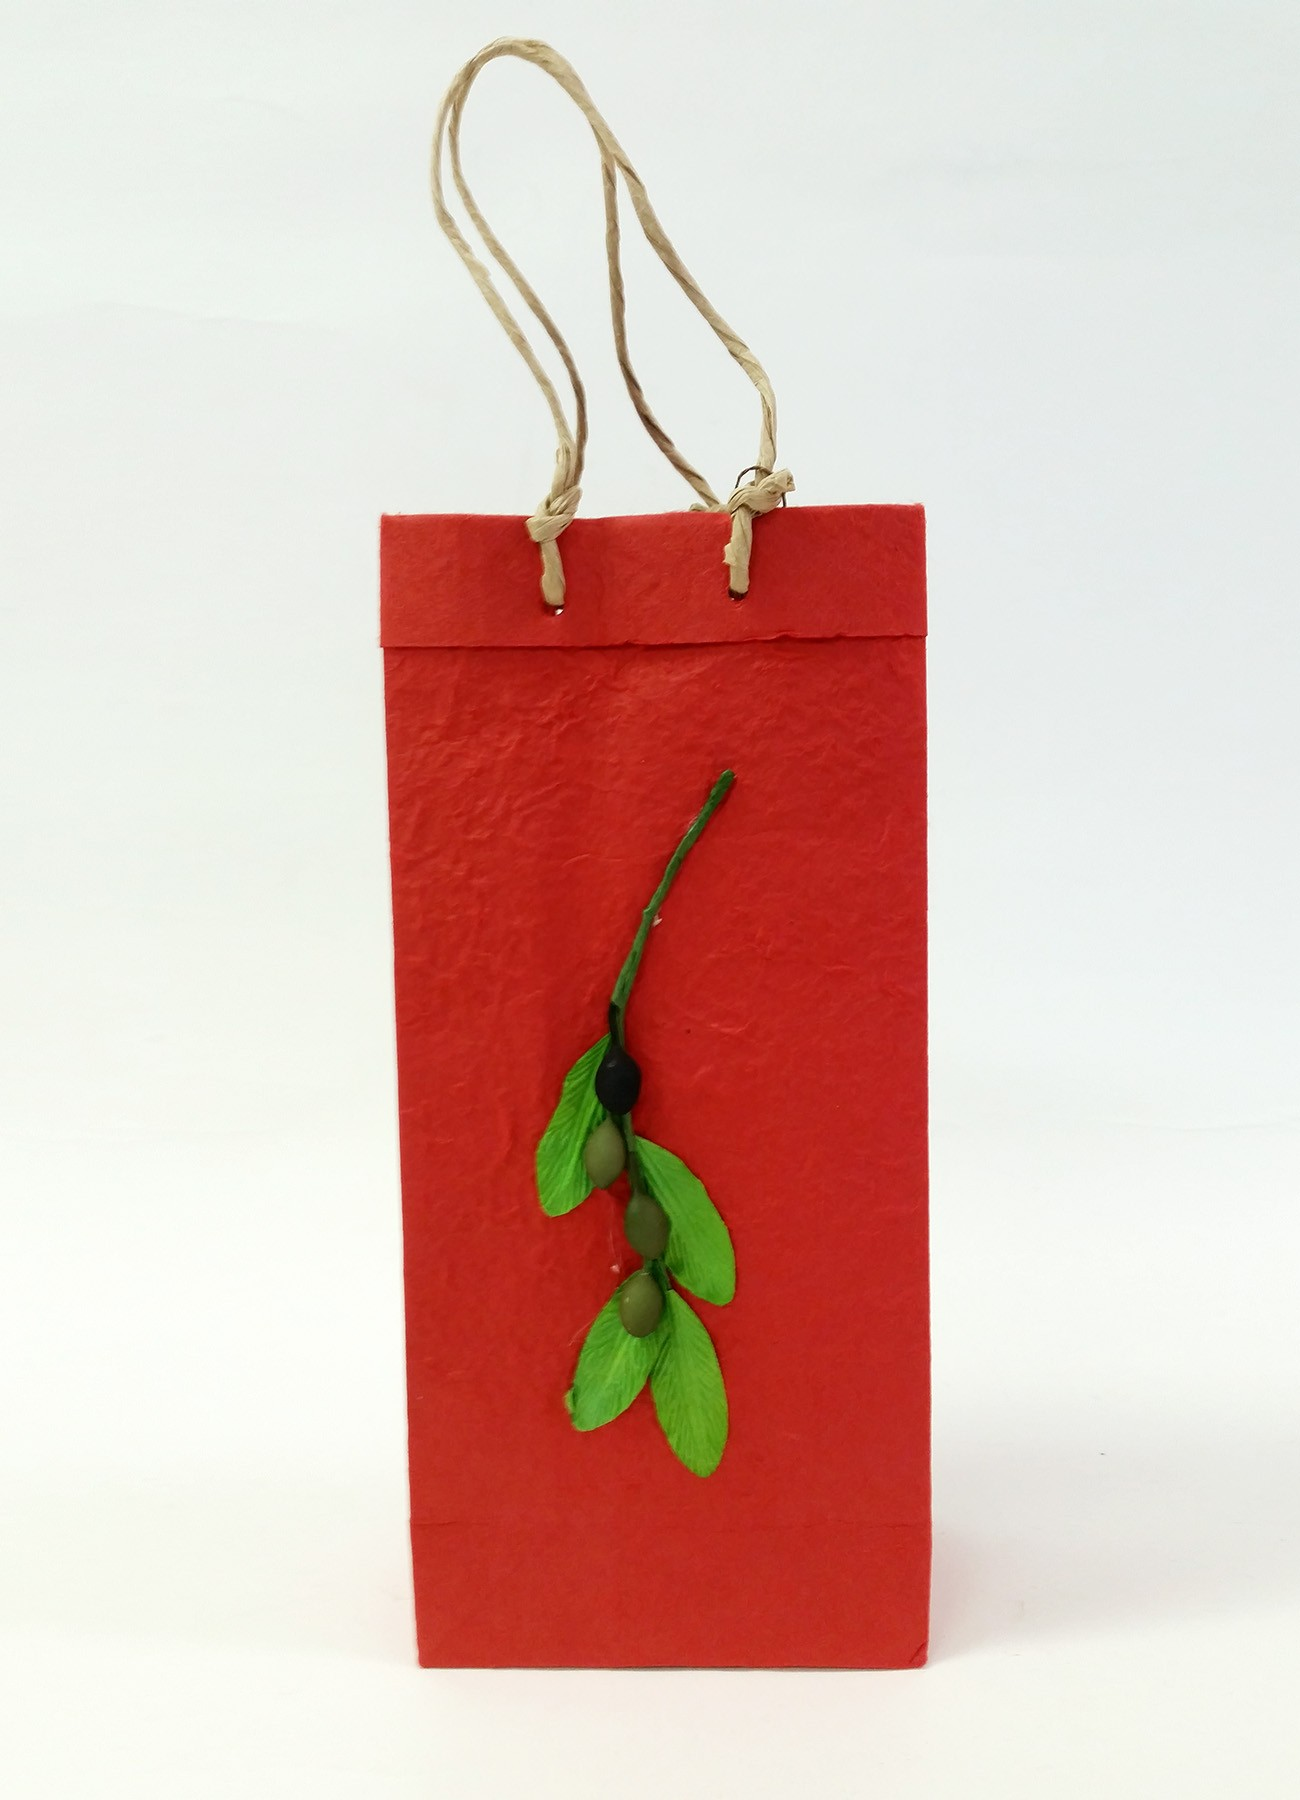 Two-Bottle Olive Branch Gift Bag in Red